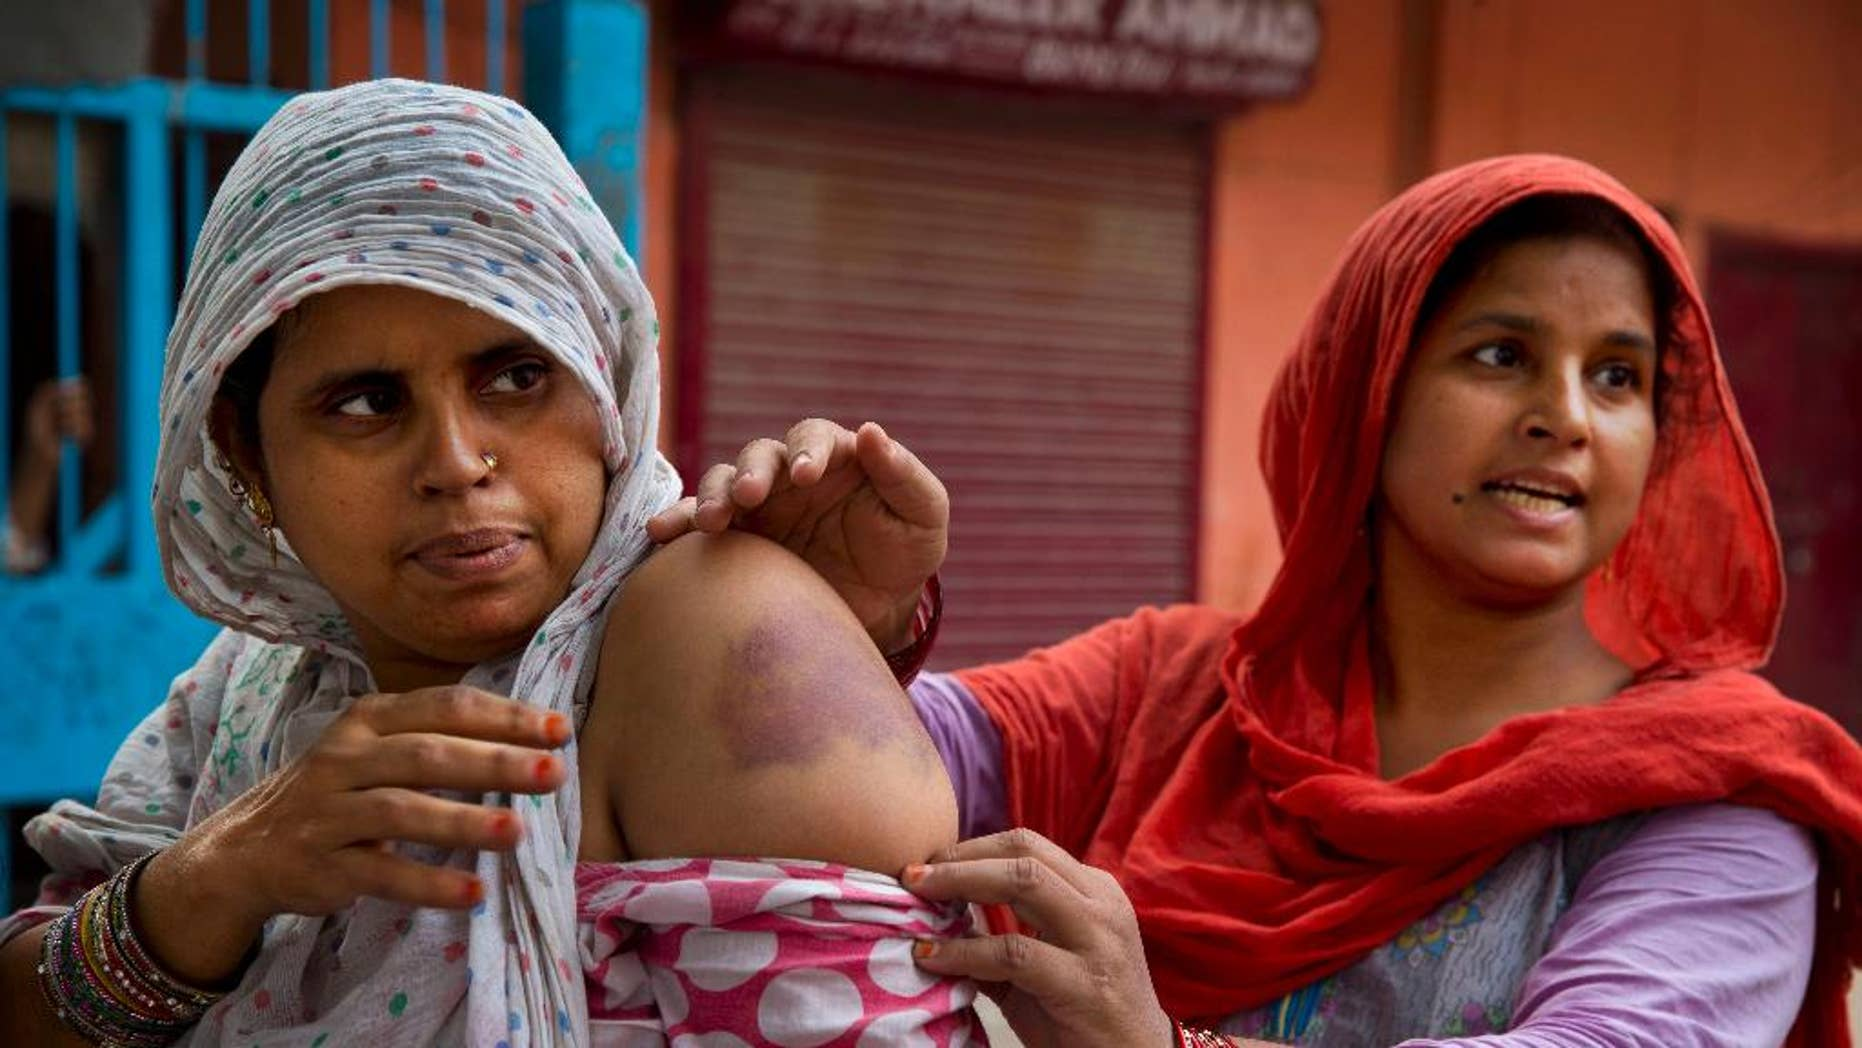 Nov. 7, 2014: Bhuri Begum, right, pulls down the sleeve of Farhad's shirt to display bruises caused allegedly by police beating after security was enhanced in the area following rioting between Hindus and Muslims in New Delhi